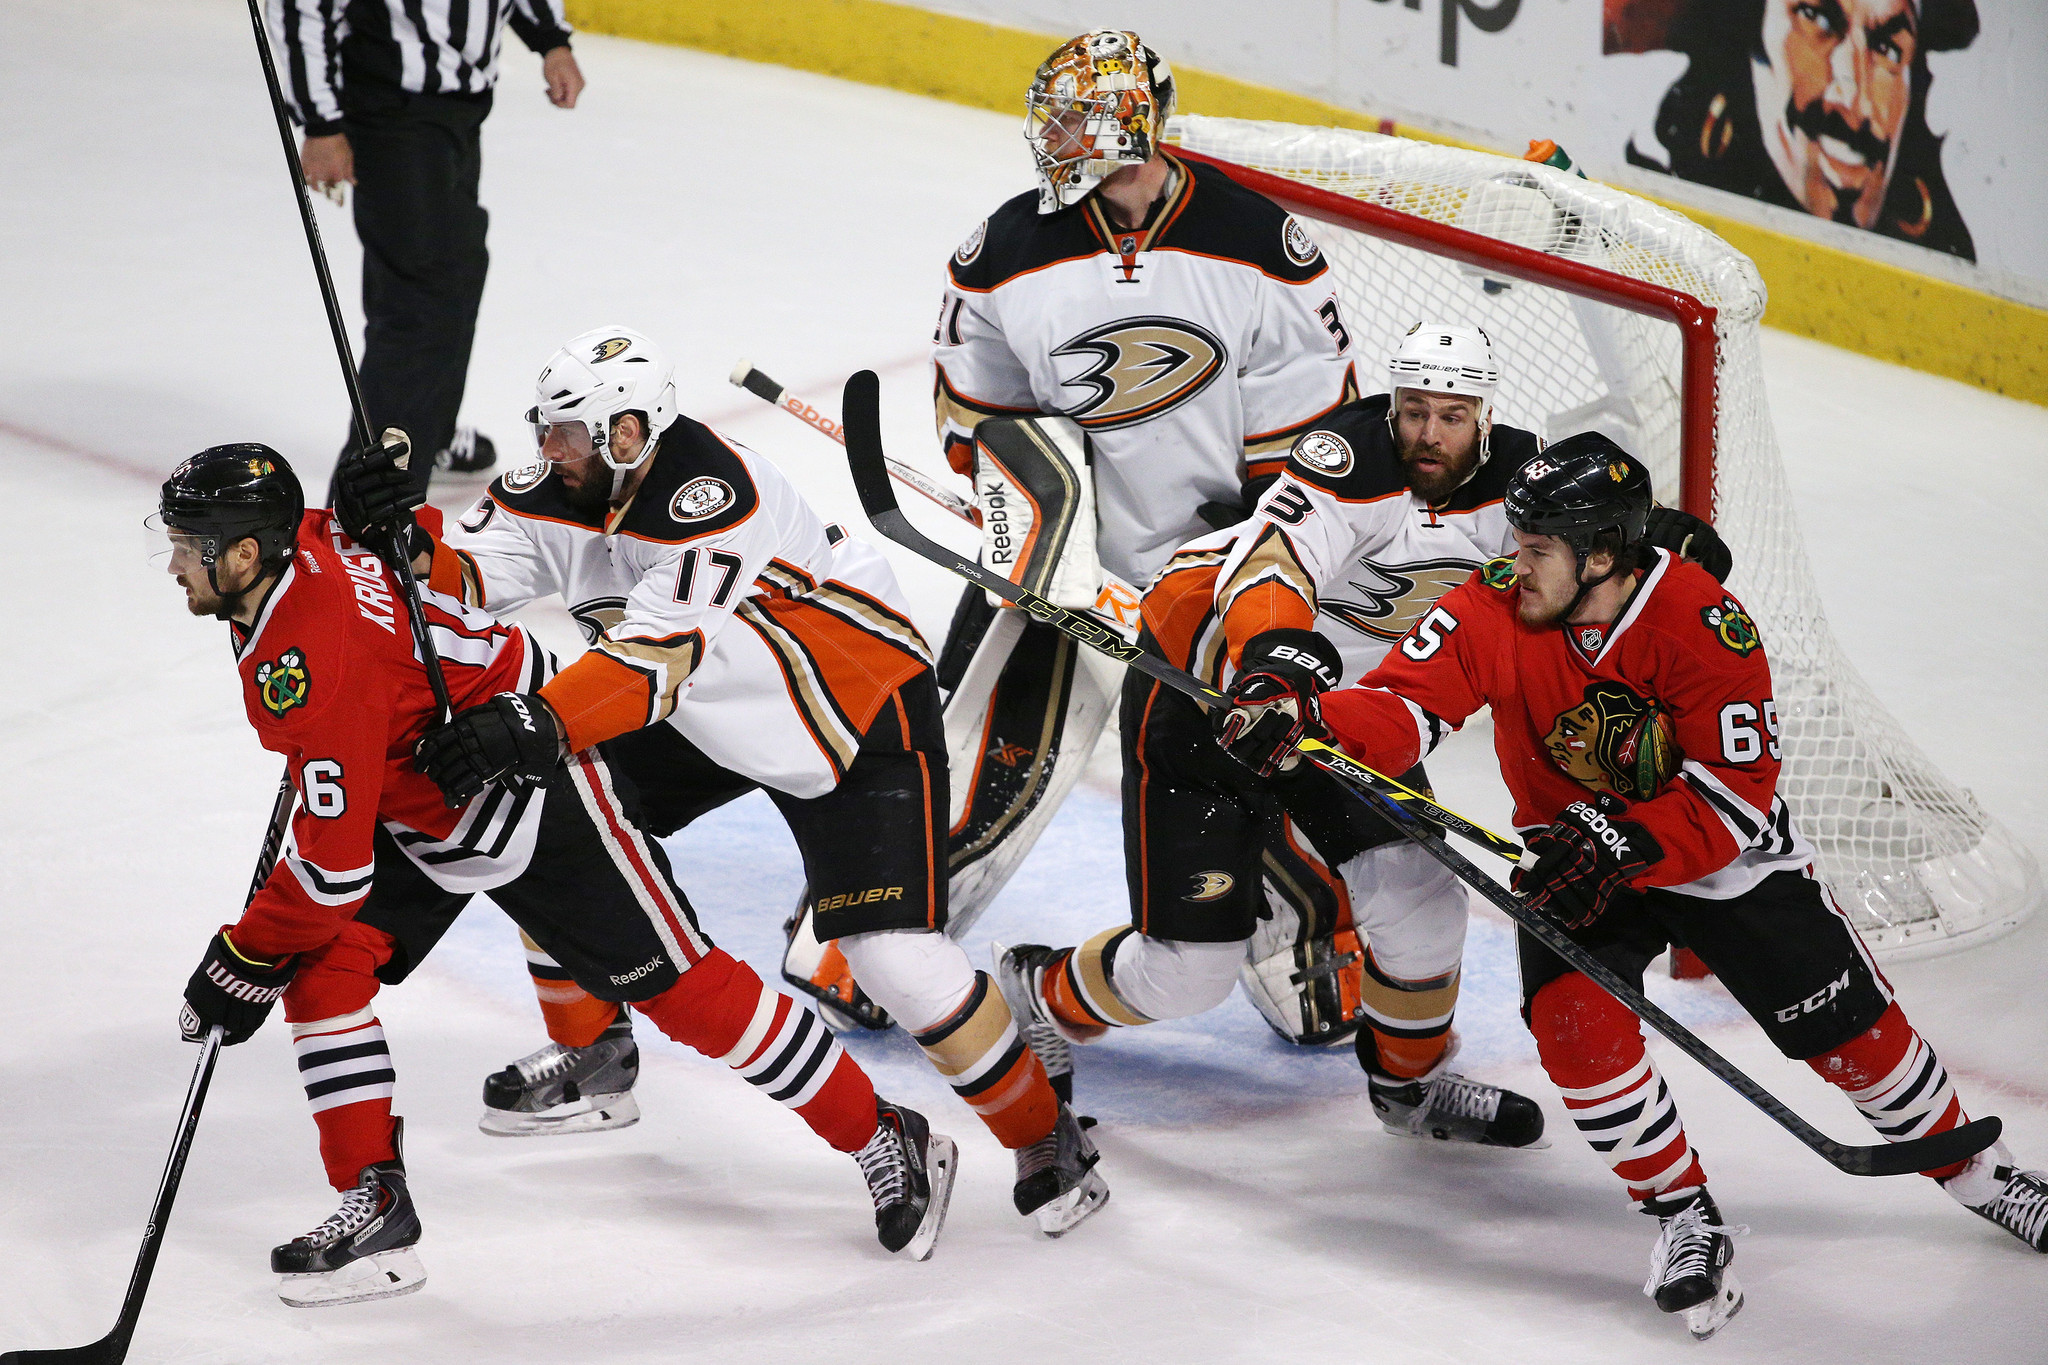 Game 6: Blackhawks Vs. Ducks